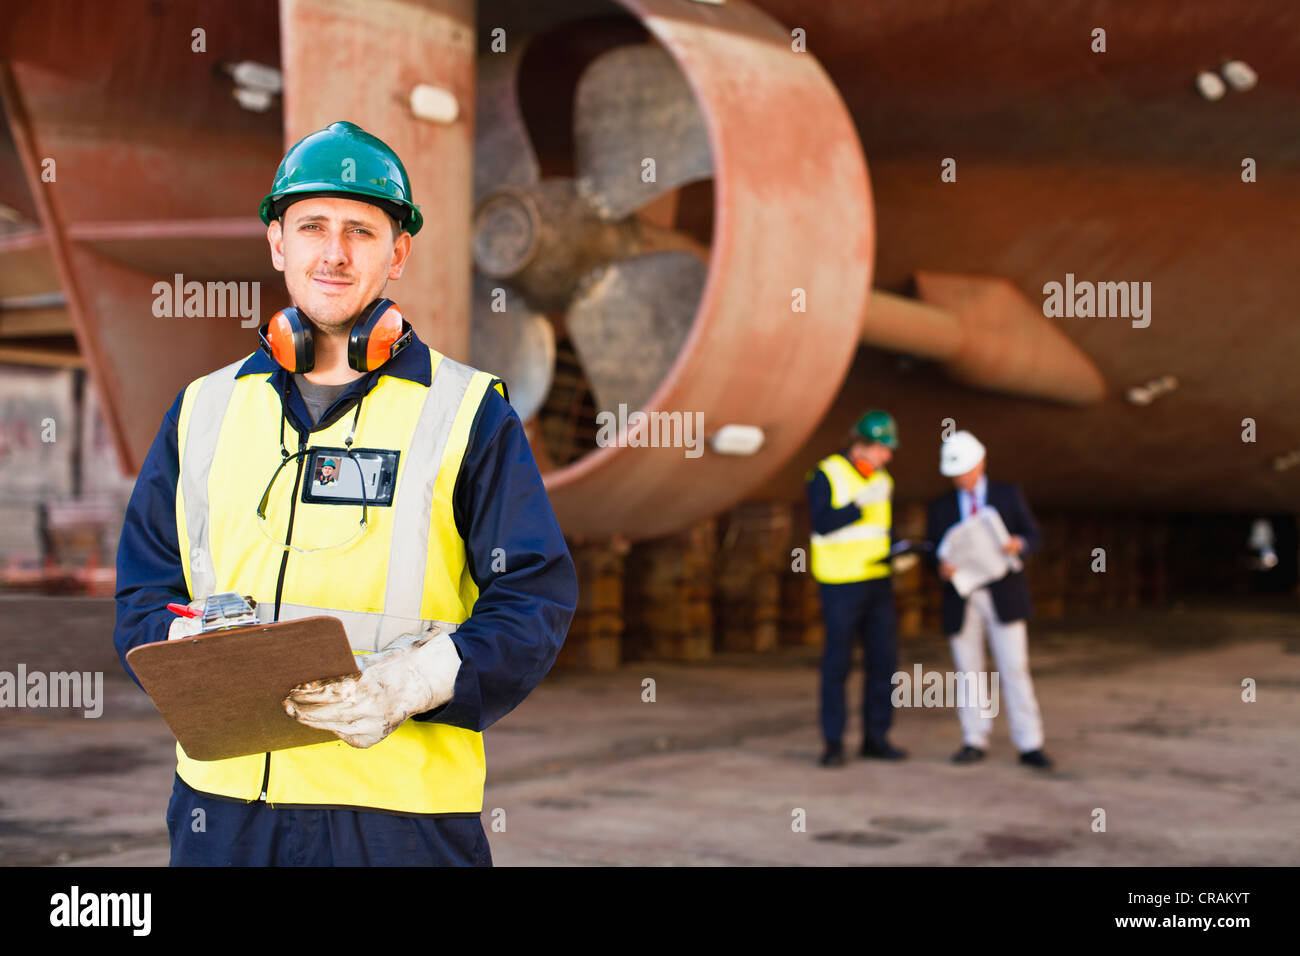 Worker carrying clipboard on dry dock - Stock Image